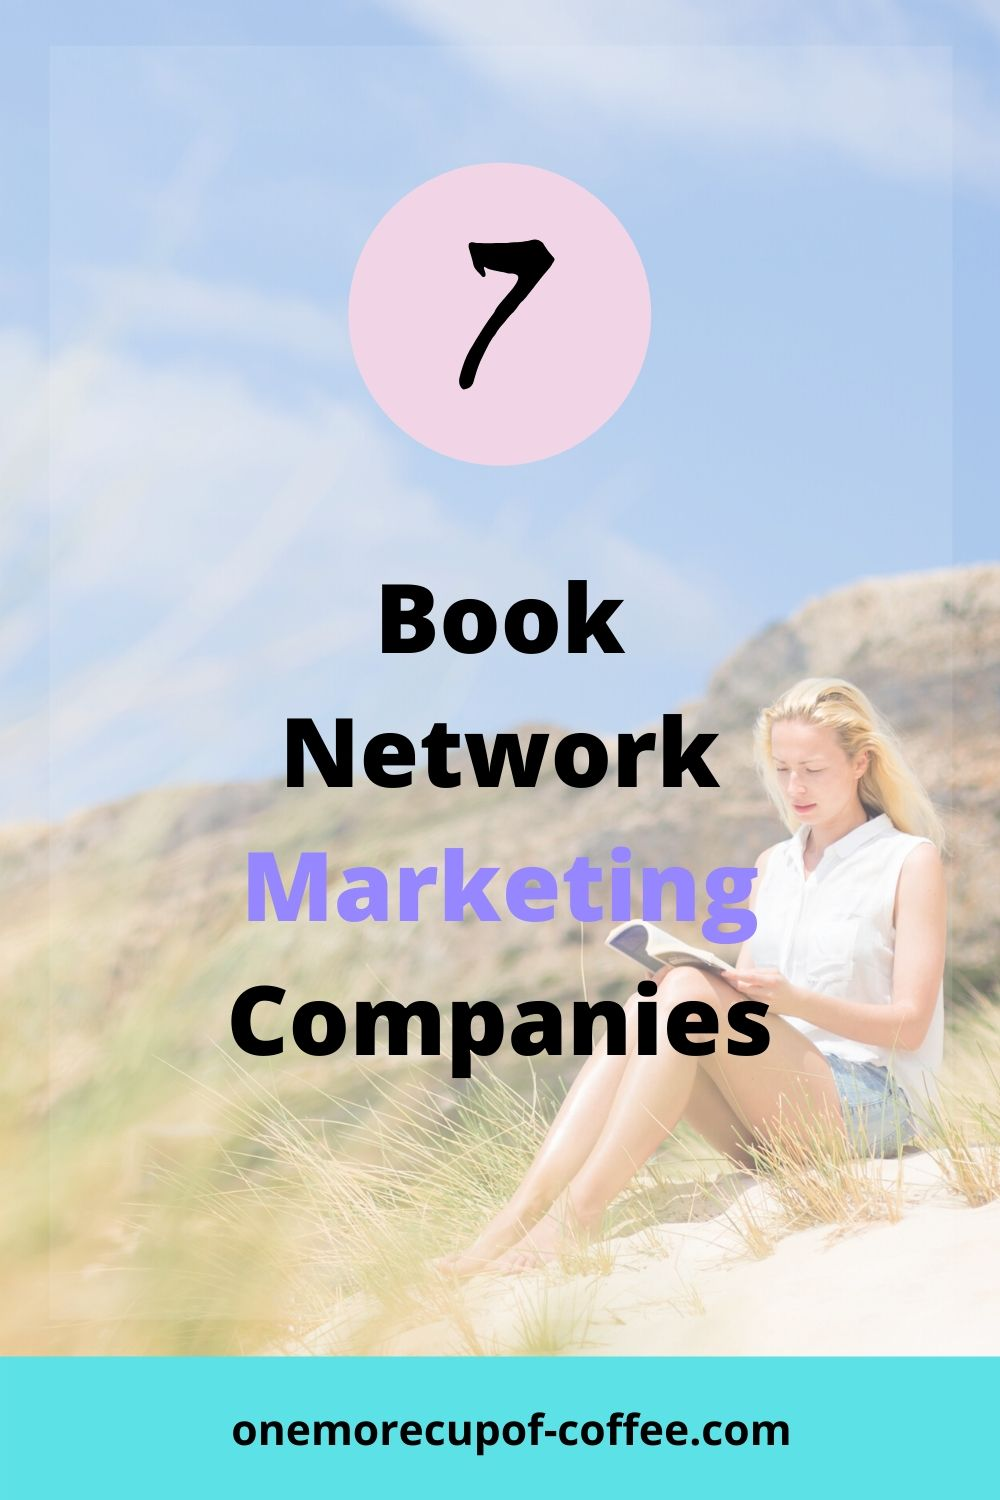 Woman reading Book to represent Book Network Marketing Companies